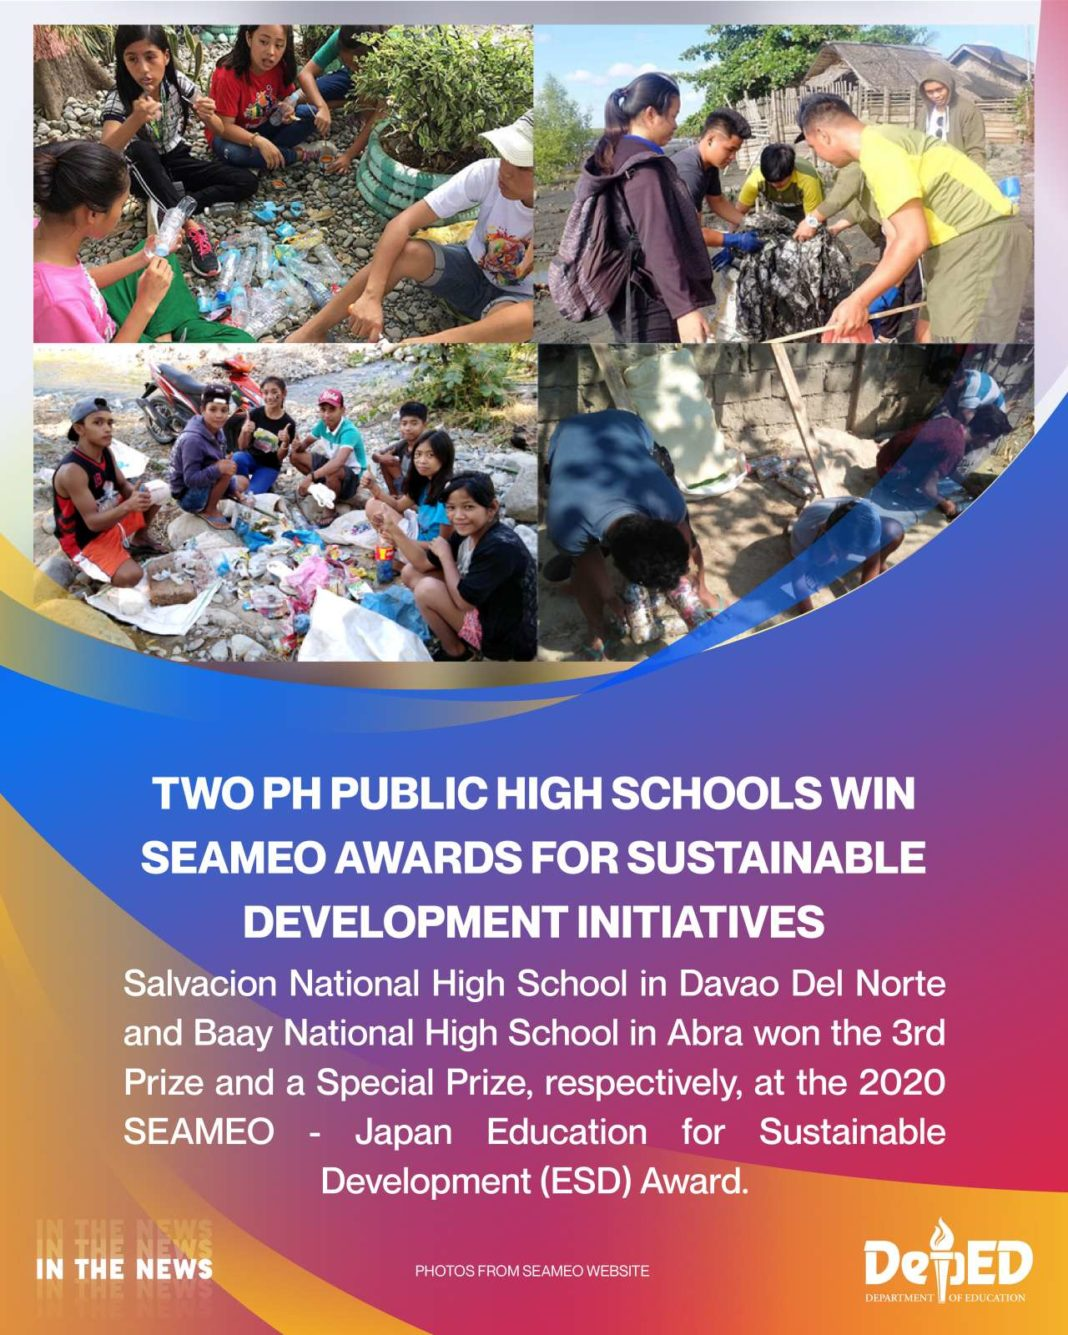 Two PH public high schools win SEAMEO awards for sustainable development initiatives